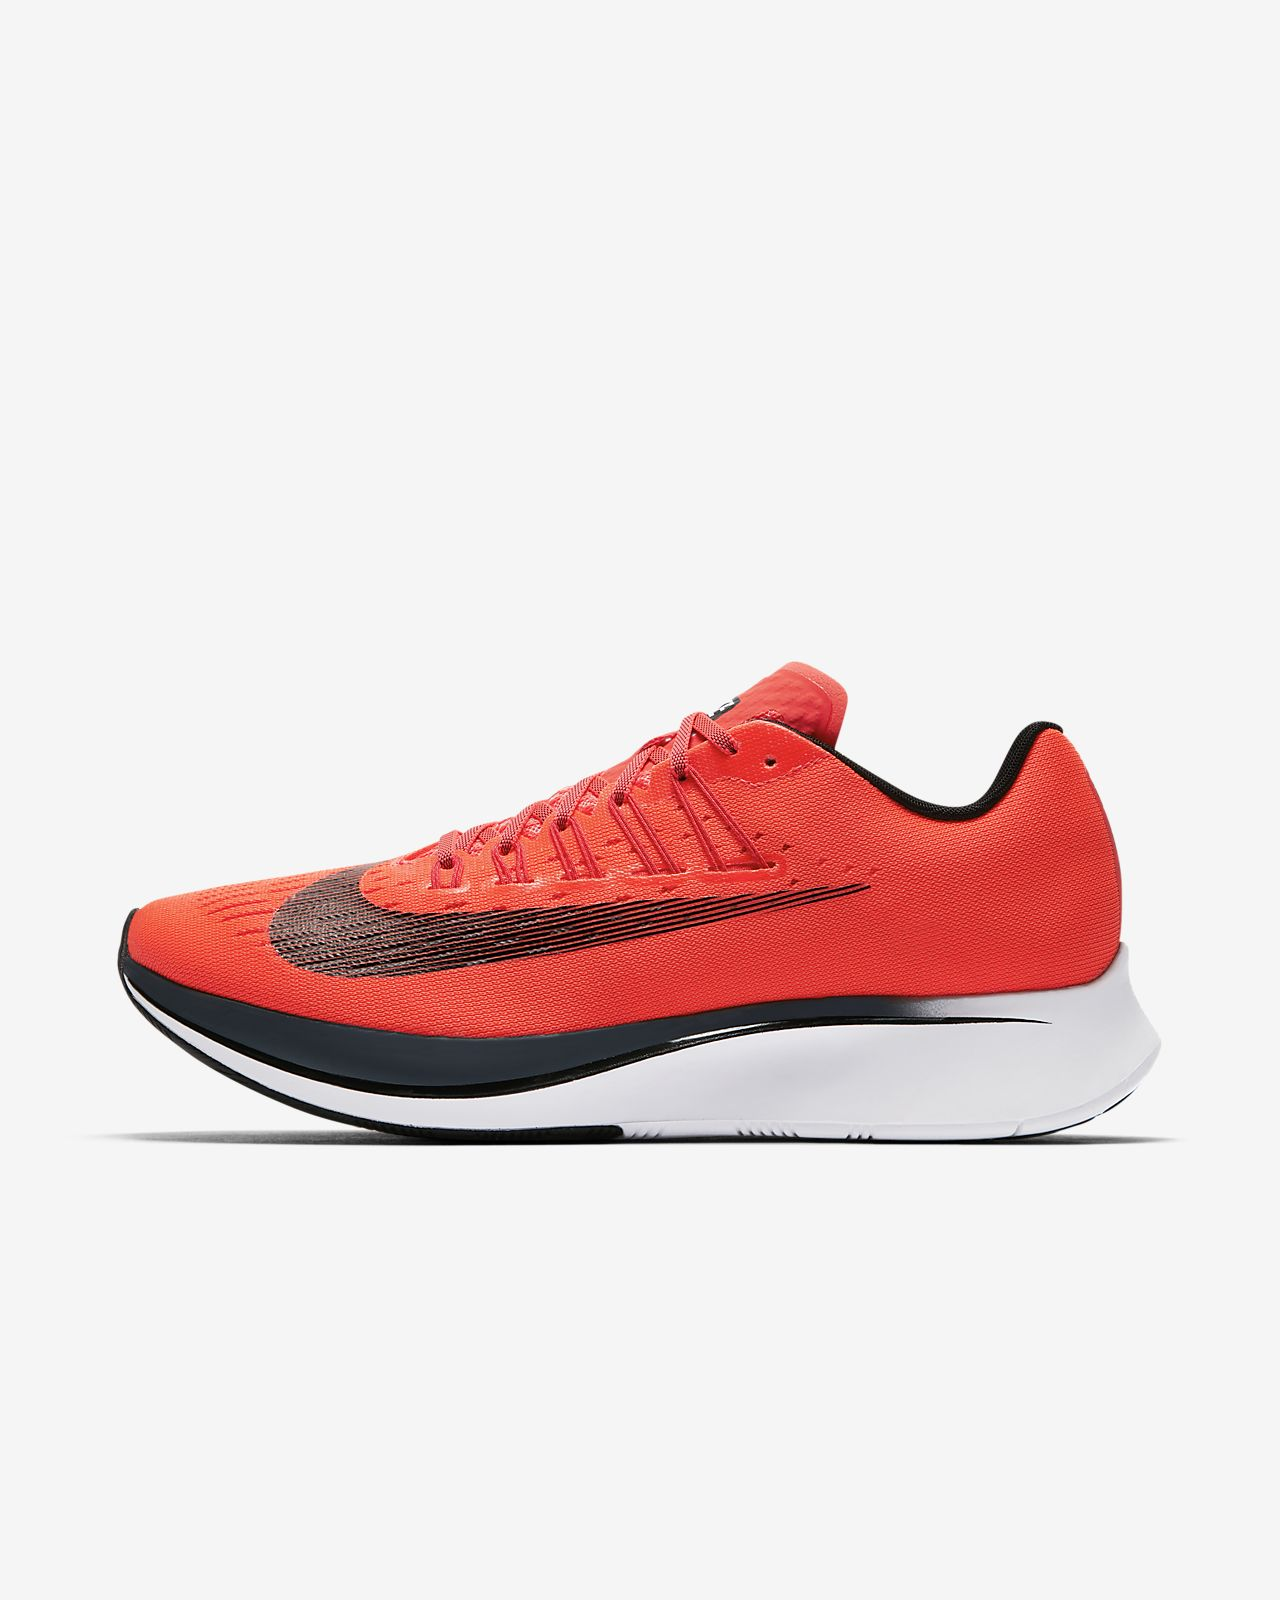 c805d96ae36a Nike Zoom Fly Men s Running Shoe. Nike.com CA